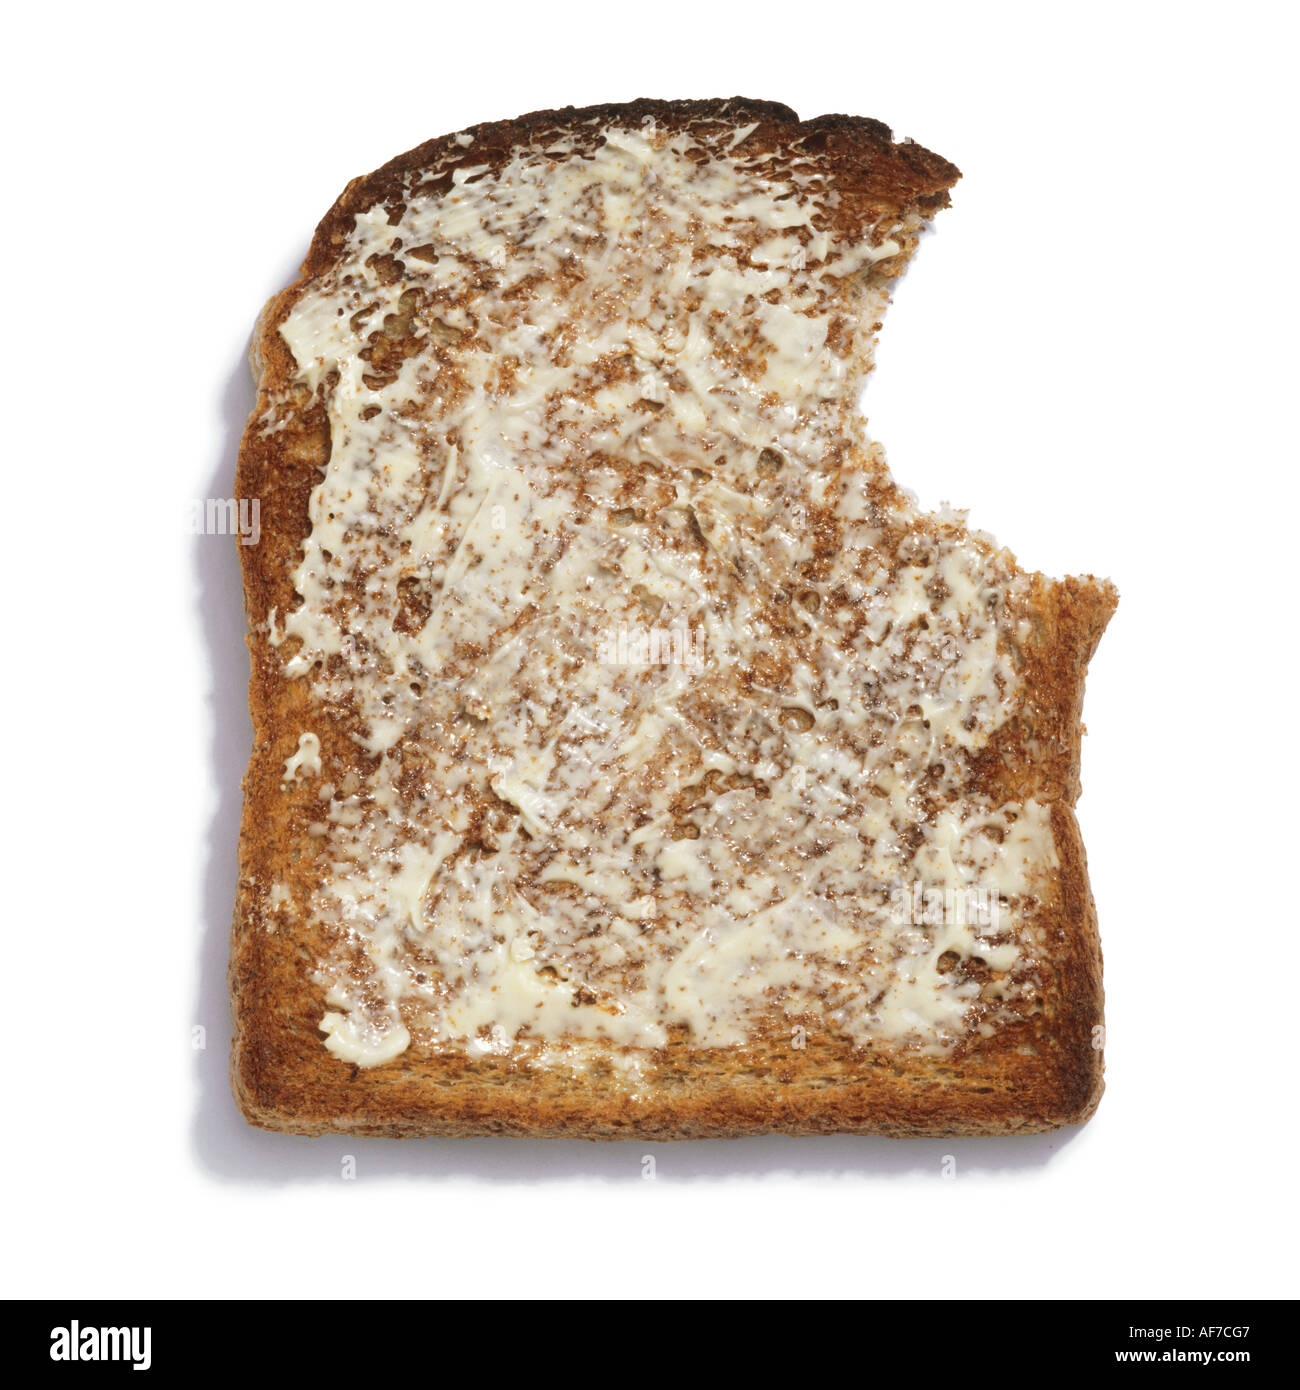 A bitten slice of buttered toast - Stock Image